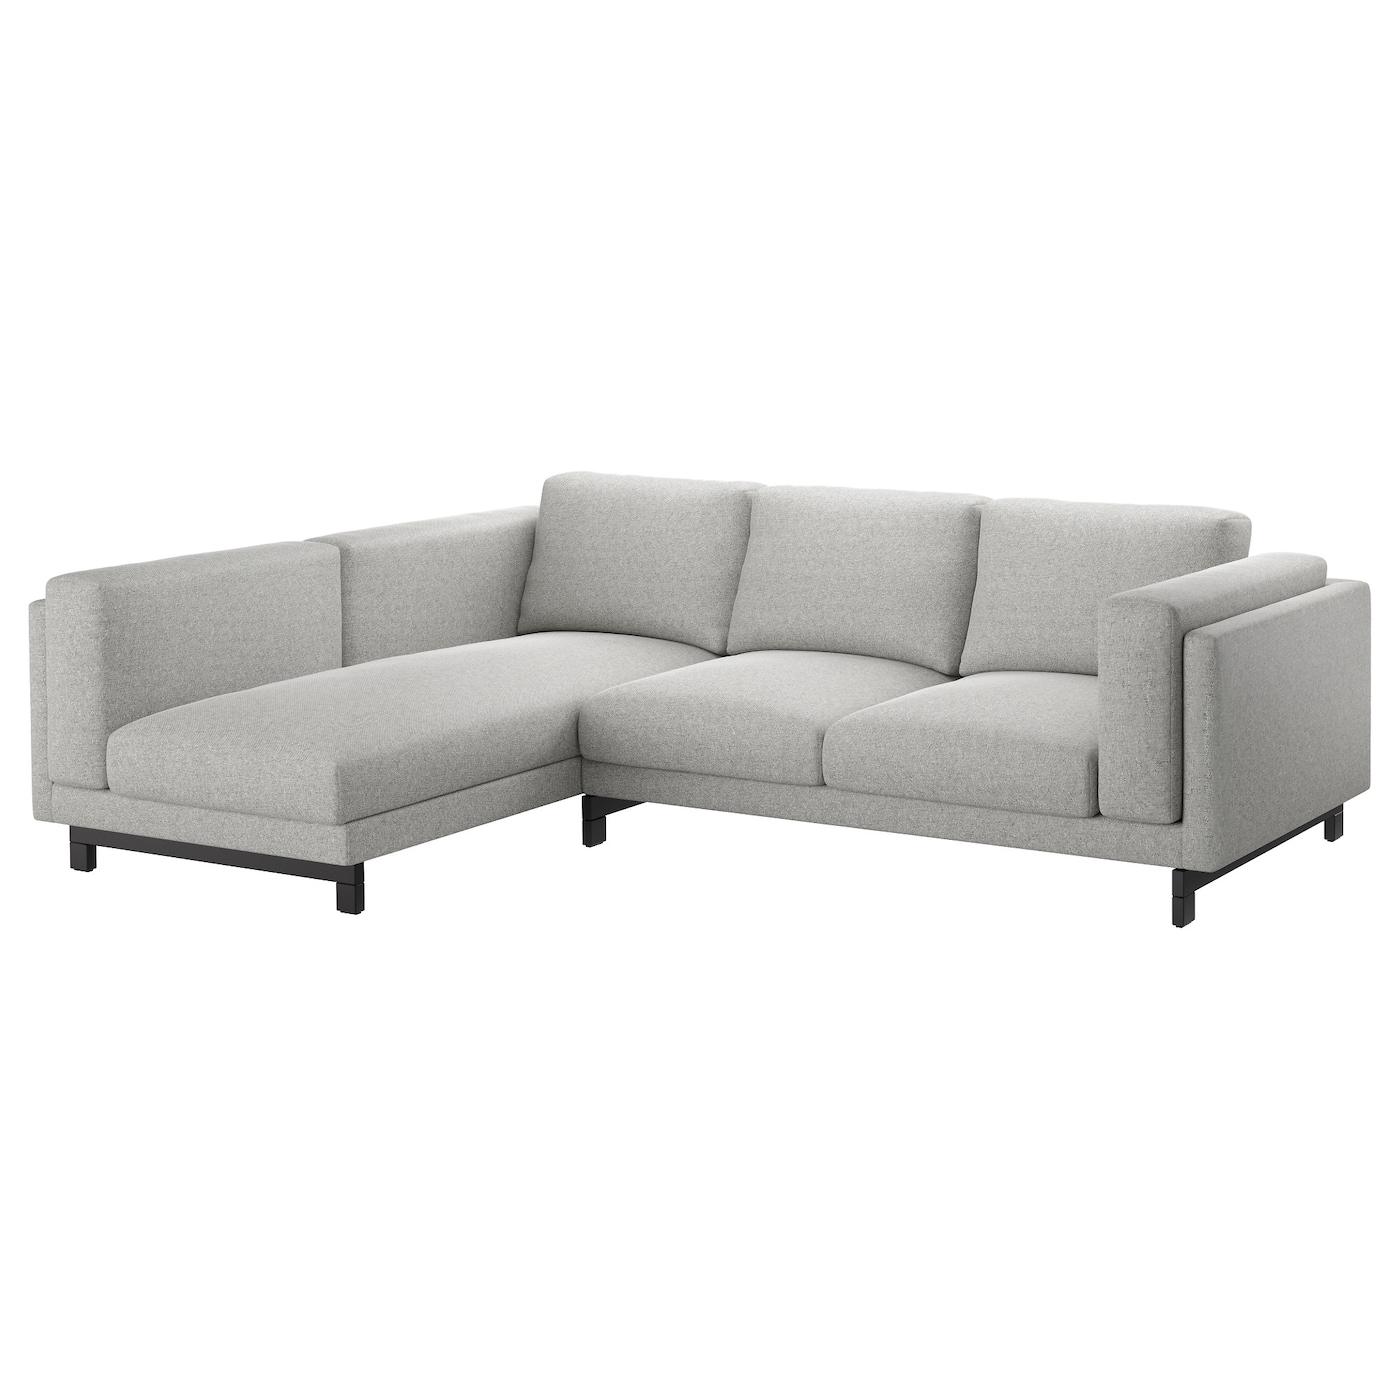 3 Seat Sofa Nockeby With Chaise Longue Left Tallmyra Tallmyra Wood White Black Wood